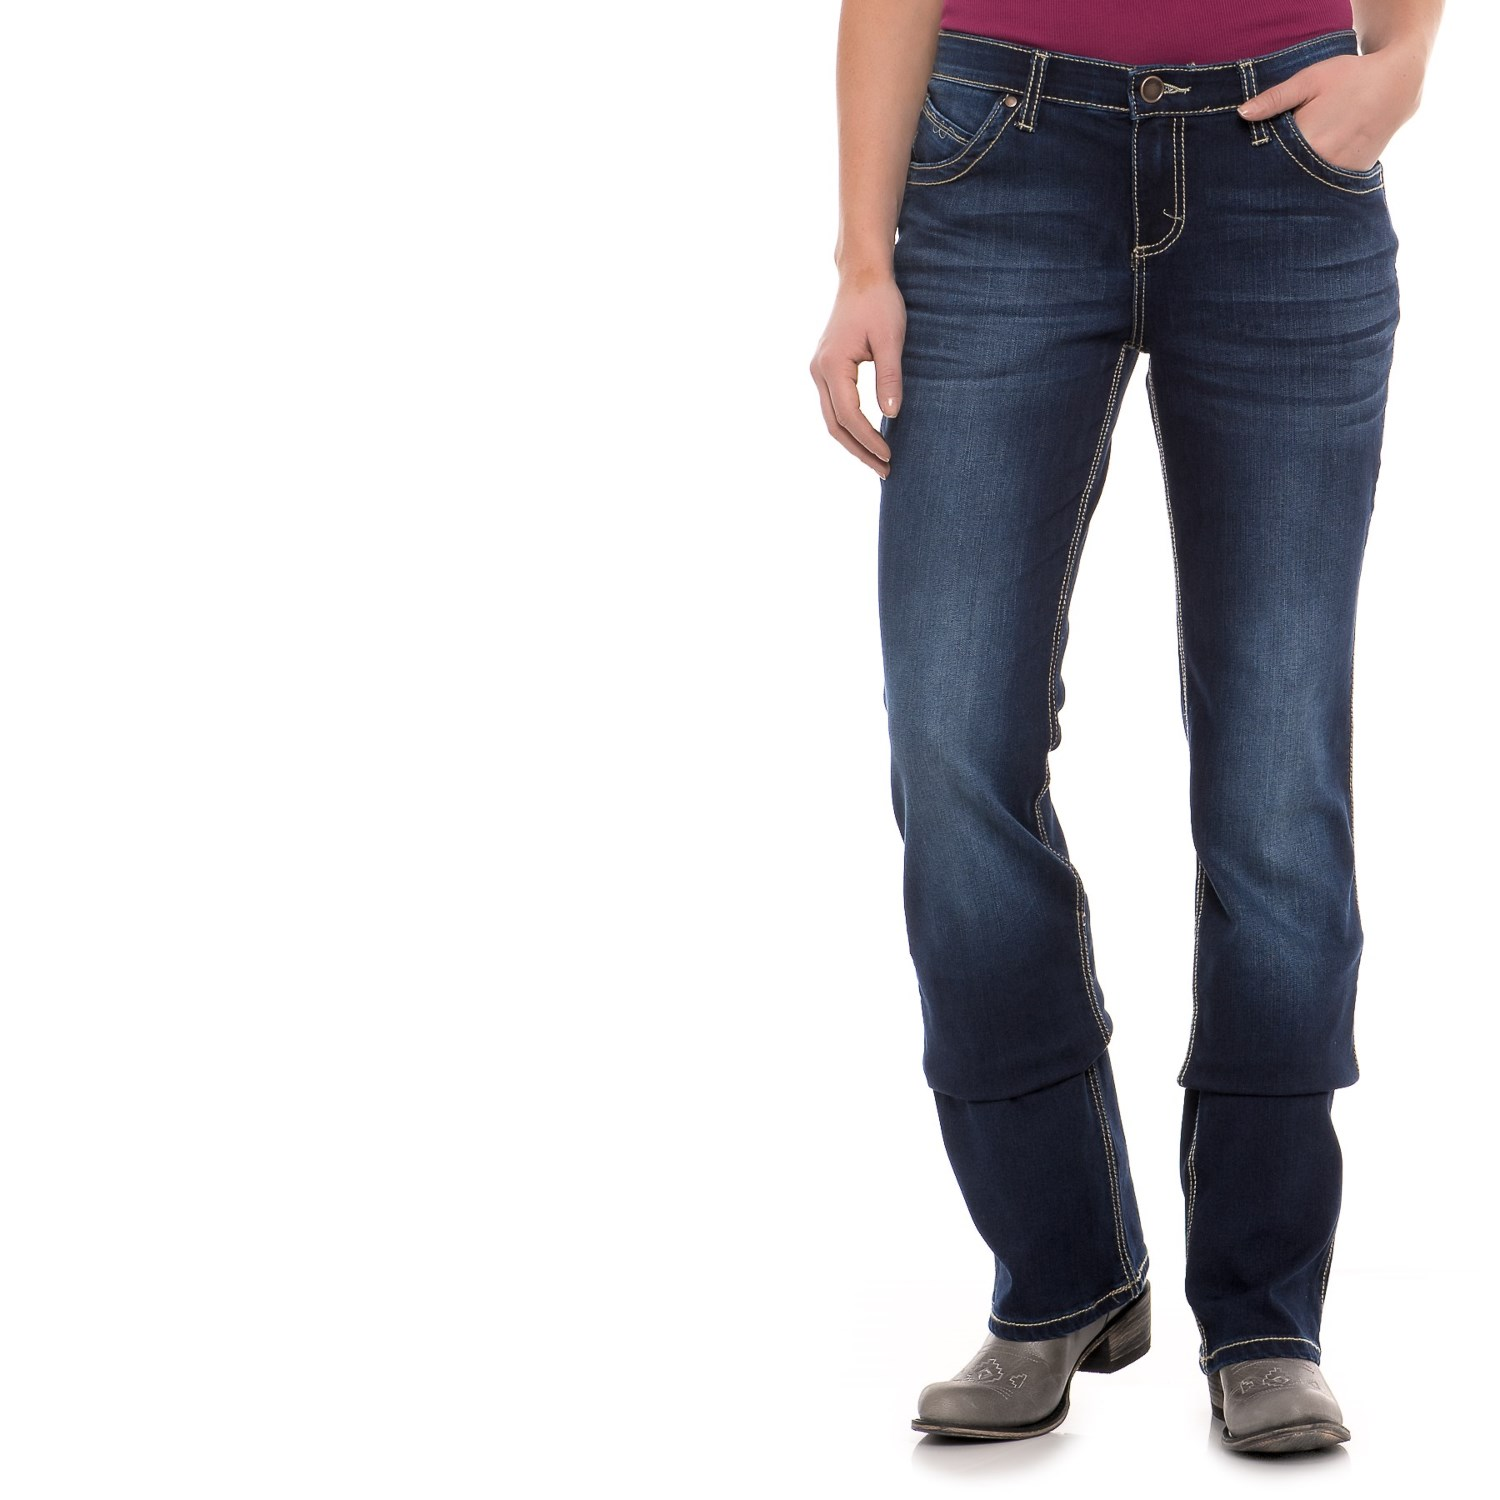 db943371cc7 169XX 7 Wrangler Q-Baby Ultimate Riding Jeans - Sits Below the Waist